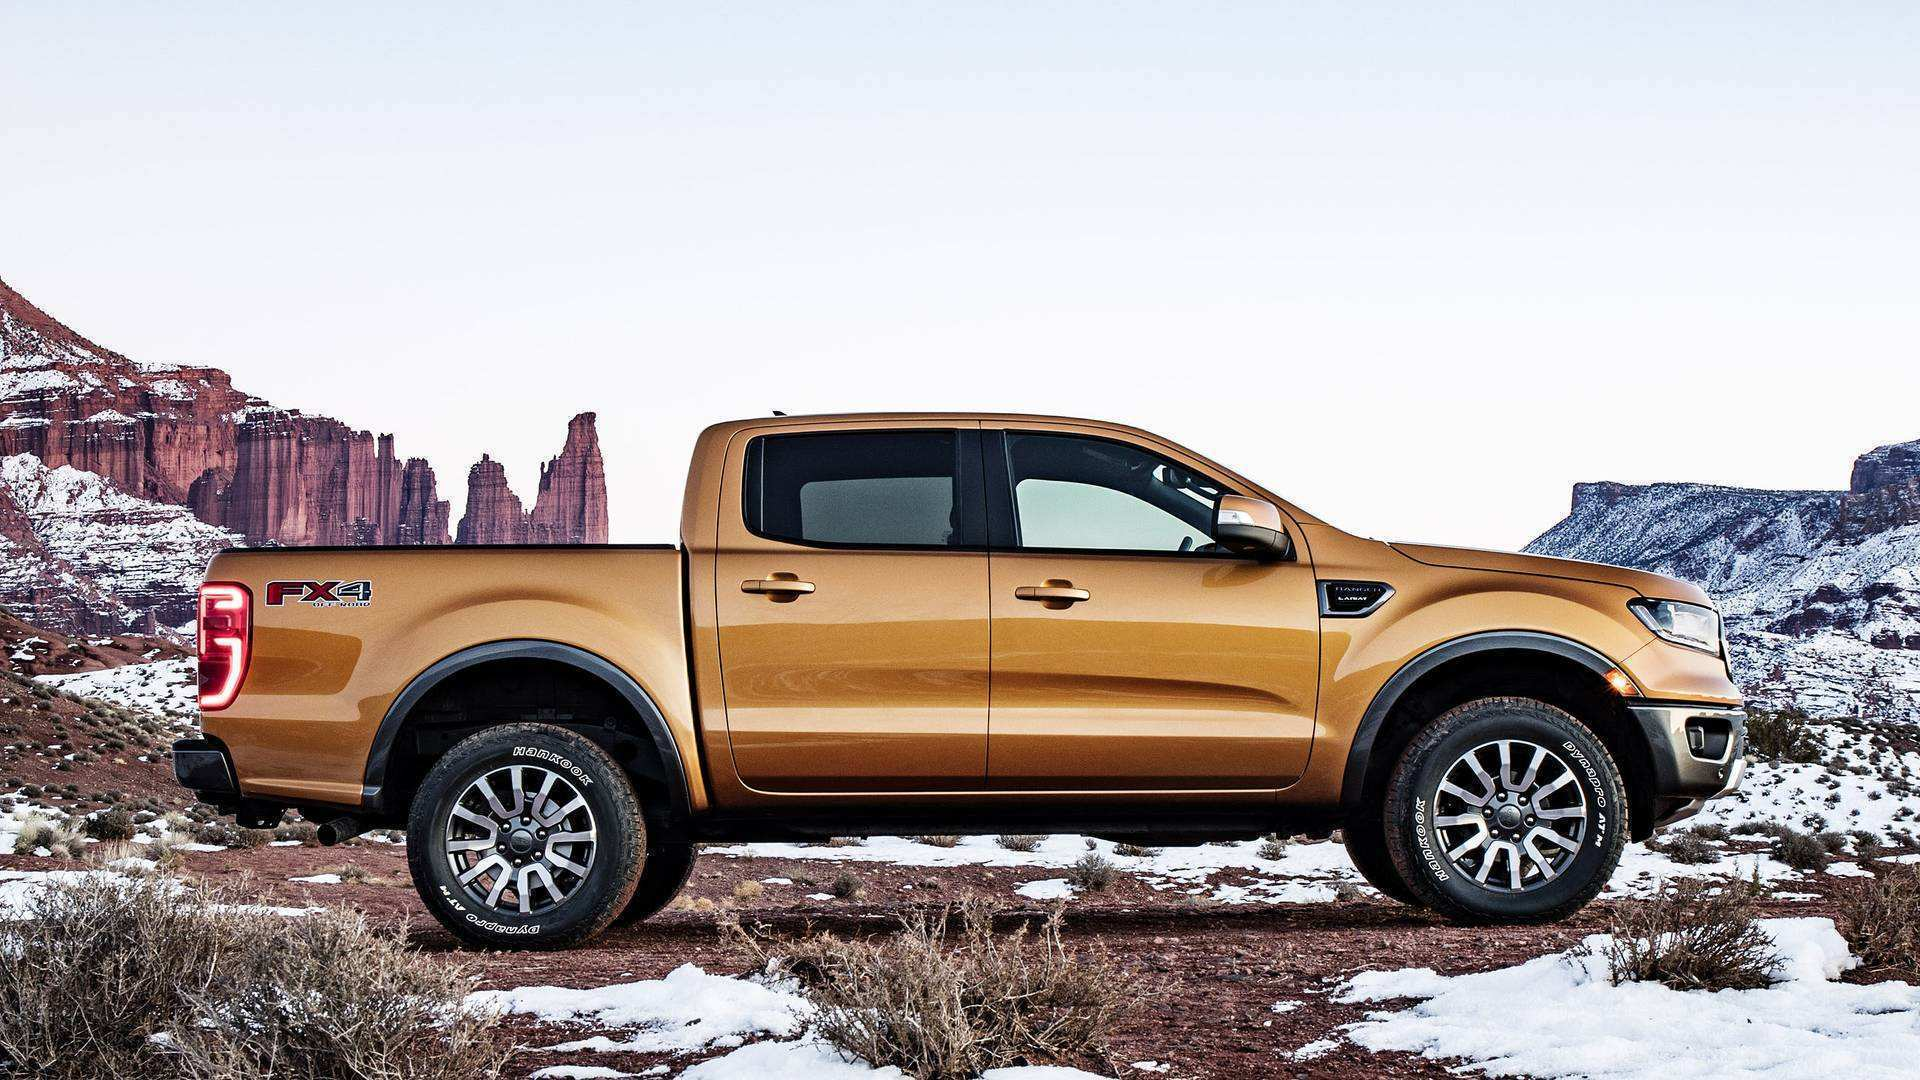 91 New 2019 Ford Ranger Images Performance by 2019 Ford Ranger Images